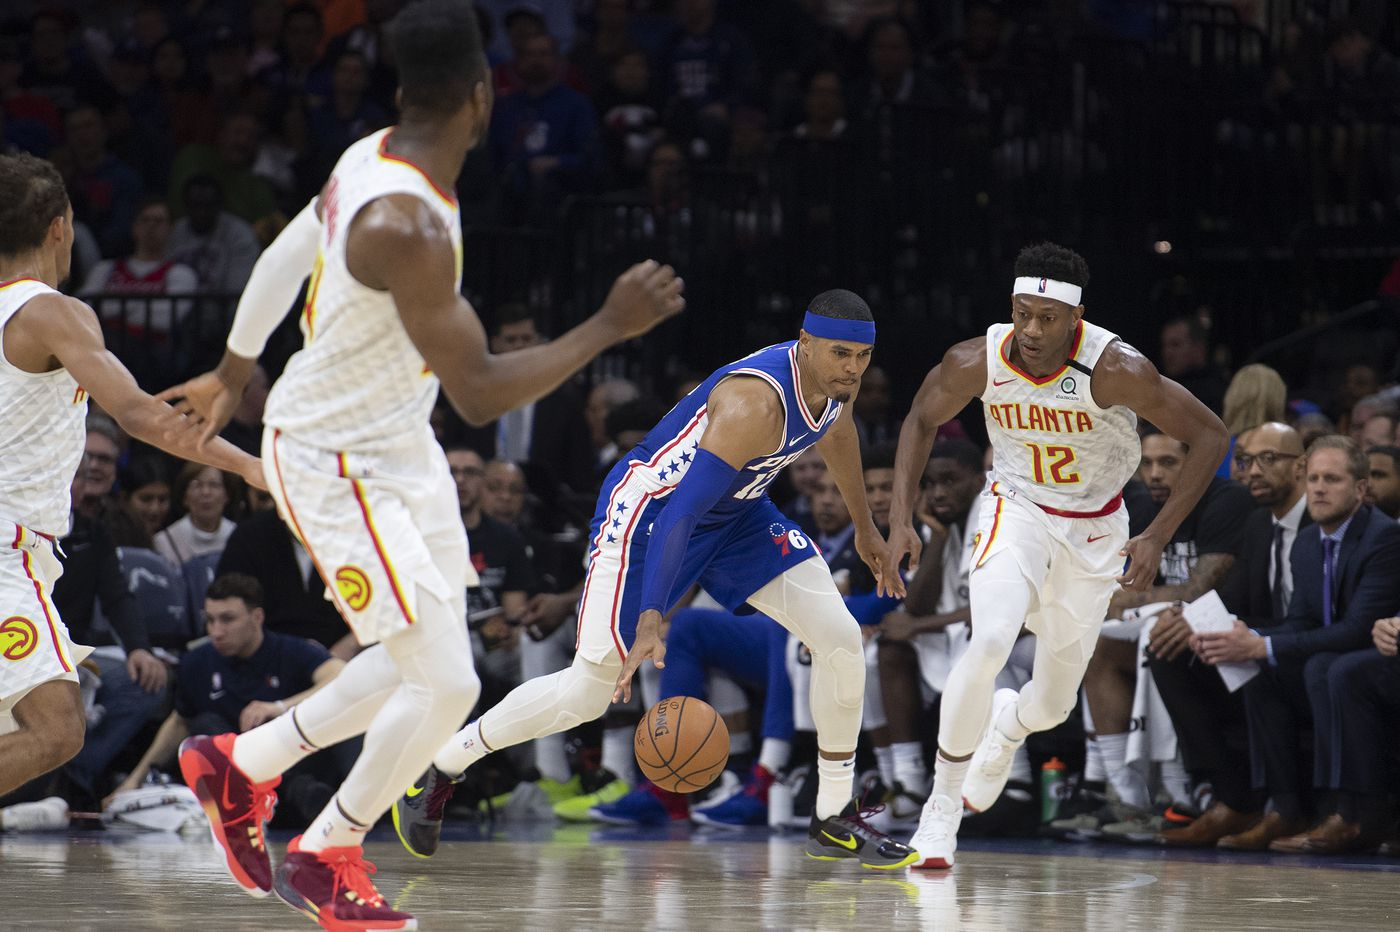 Sixers' Tobias Harris is lauded by coach Brett Brown on plea for justice in Breonna Taylor case